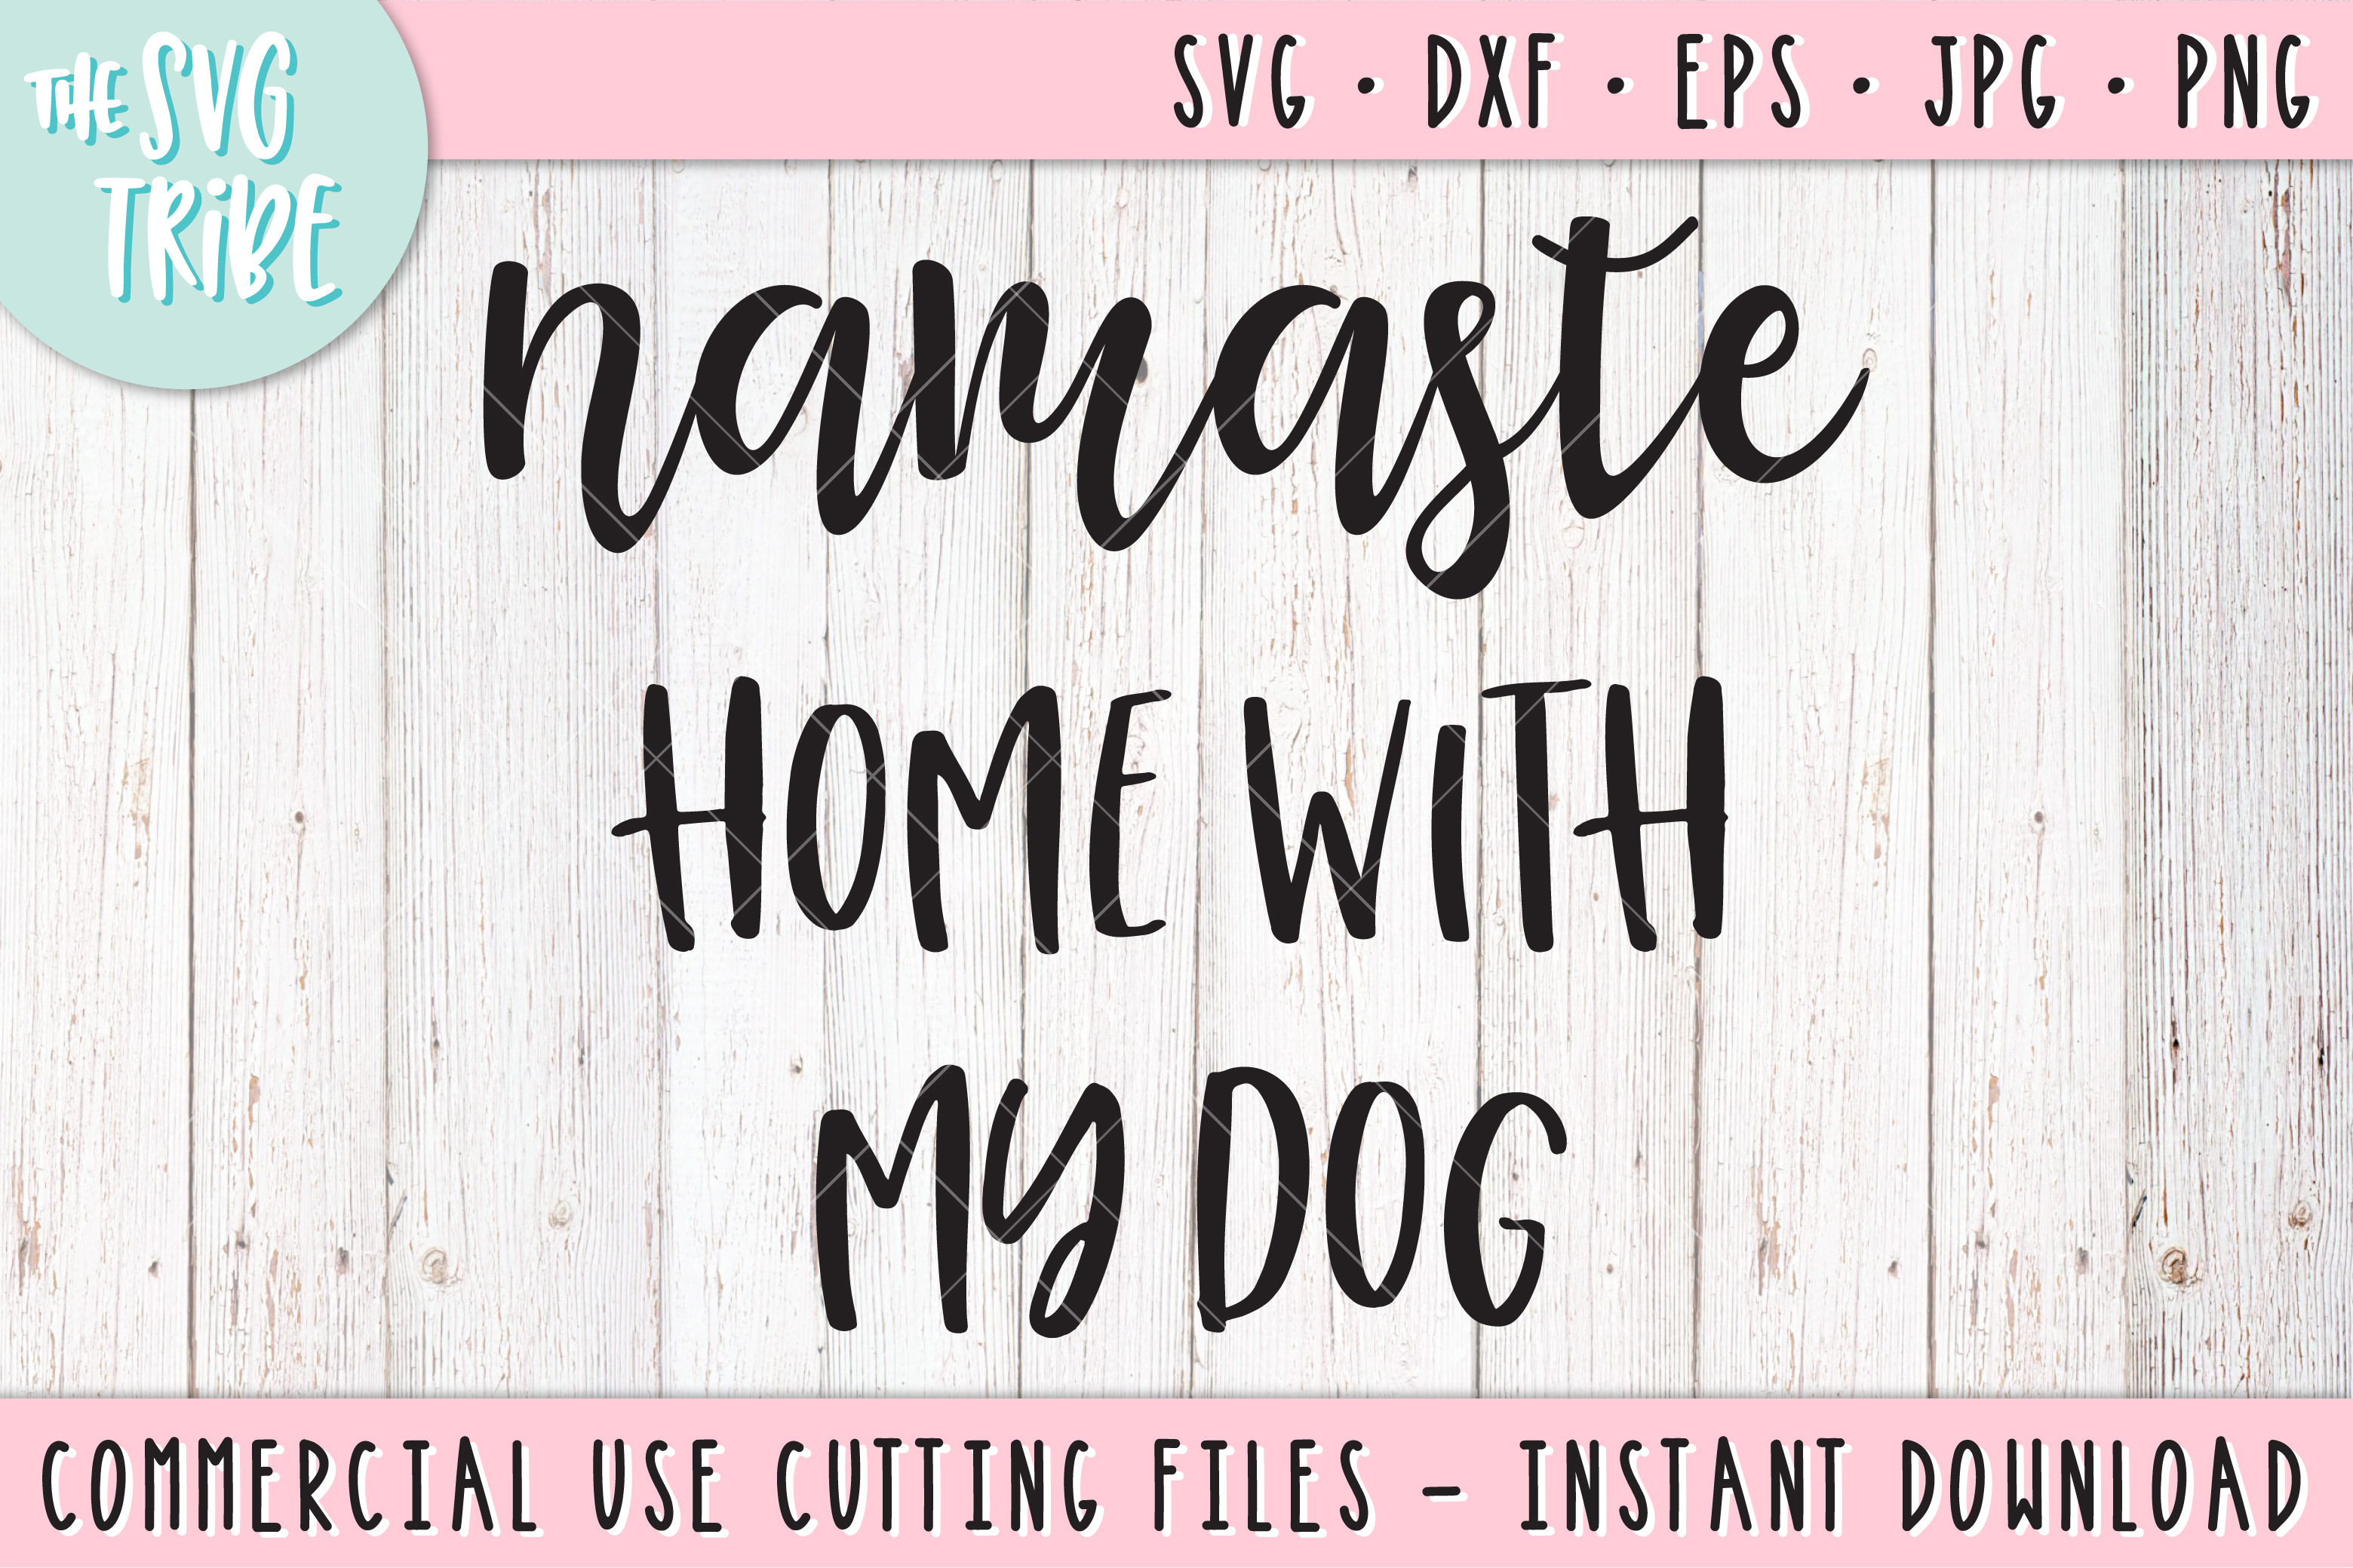 Namaste Home With My Dog, SVG DXF PNG EPS JPG Cutting Files example image 1